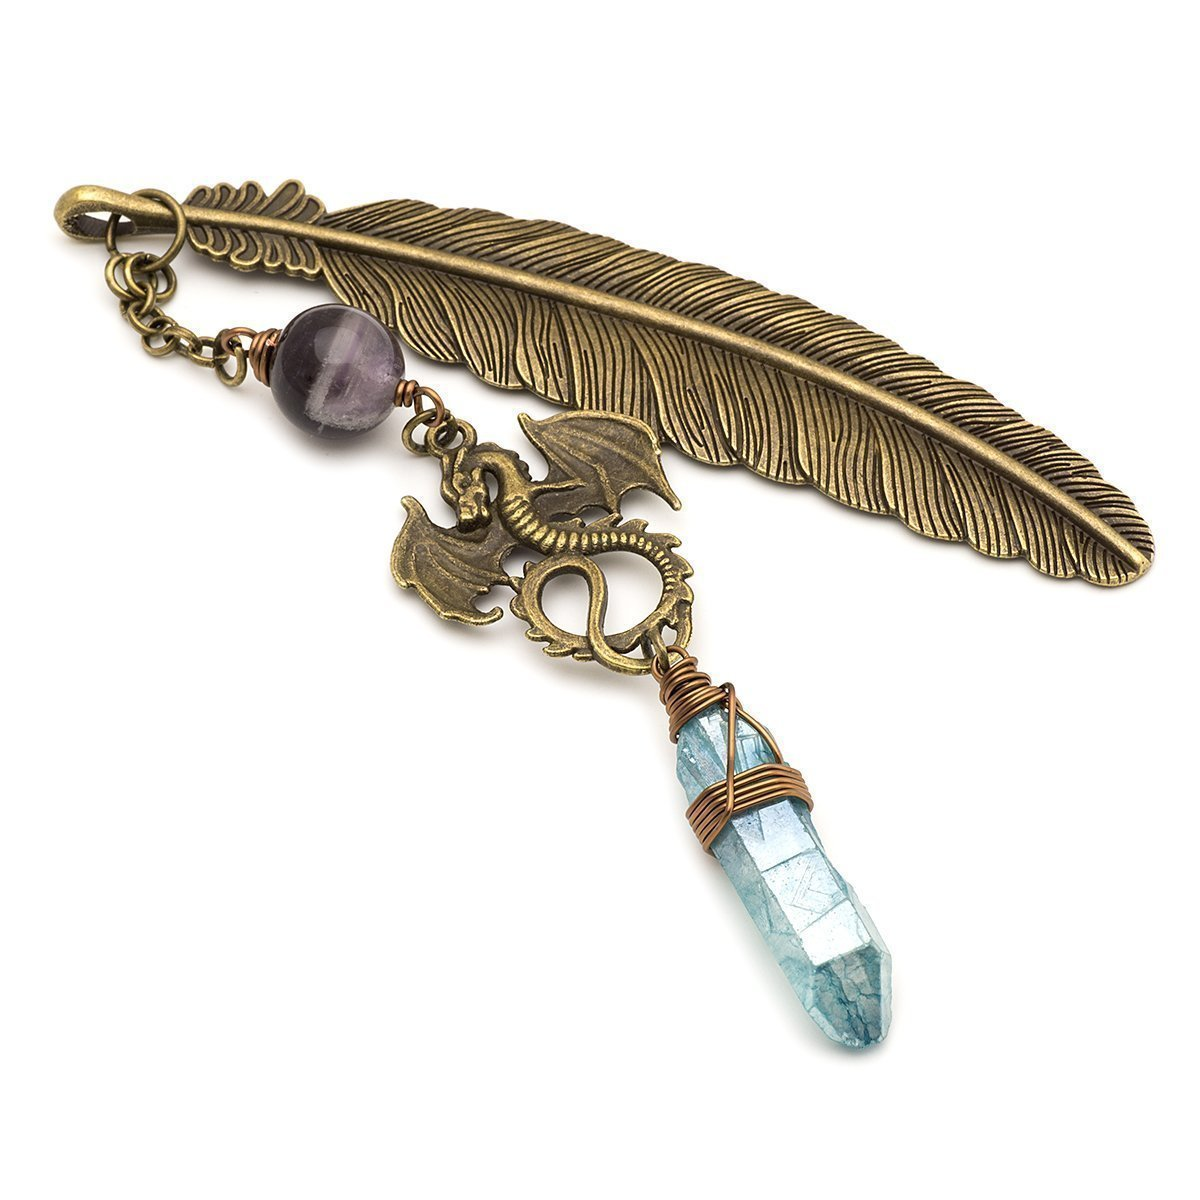 Aura quartz amethyst gemstone point dragon and feather bronze metal unique bookmark gift